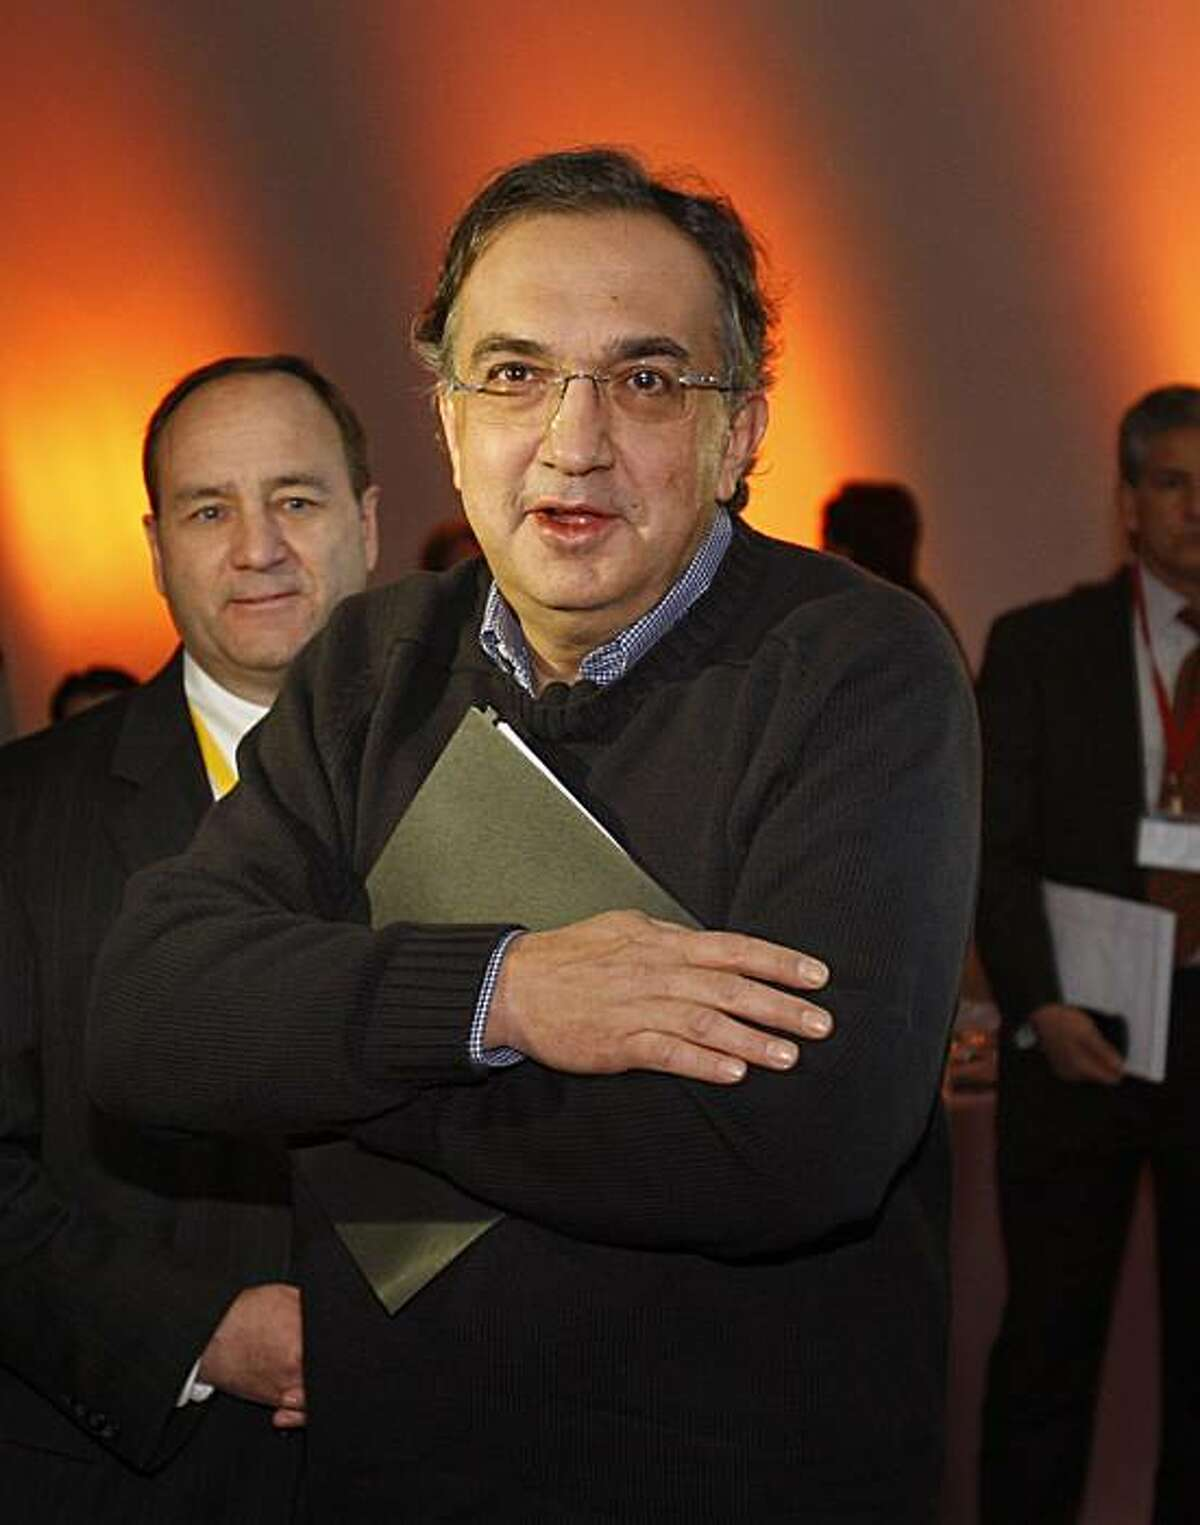 Chrysler Group LLC CEO Sergio Marchionne arrives for a news briefing at the automaker's headquarters in Auburn Hills, Mich., Wednesday, Nov. 4, 2009. (AP Photo/Carlos Osorio)